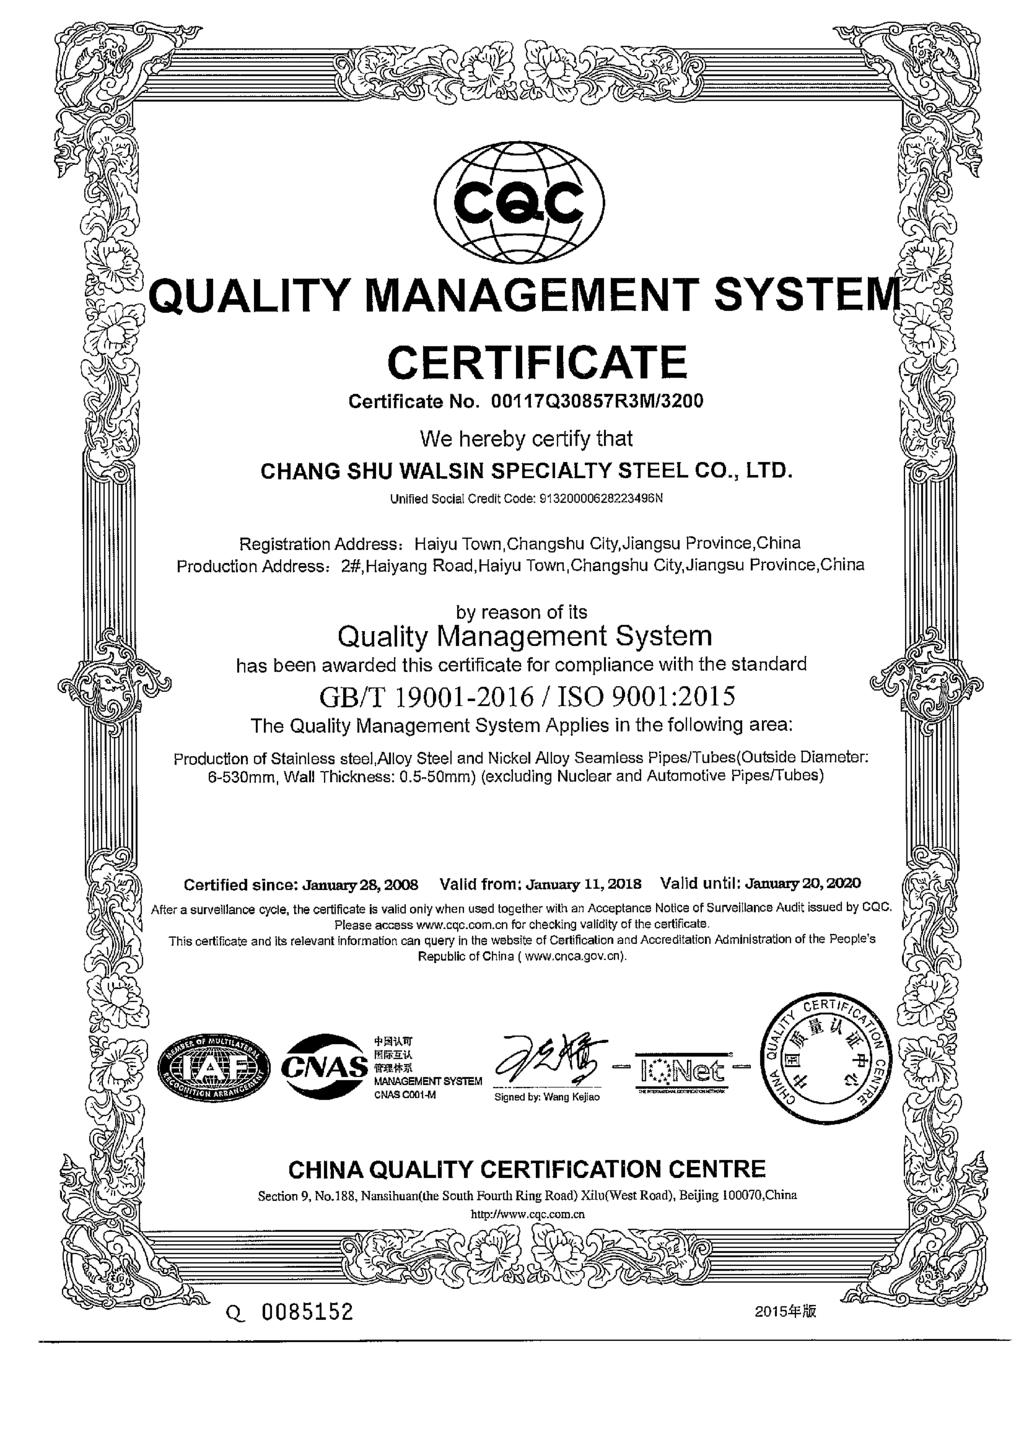 嘿', & Republic of china ( wiwcnca gcvcn) 舞 CQC CERTFCATE Certificate No 001 17Q30857R3M/3200 We hereby certify that CHANG SHU WALSN SPECALTY STEEL CO, LTD Unified Social Credit Code: